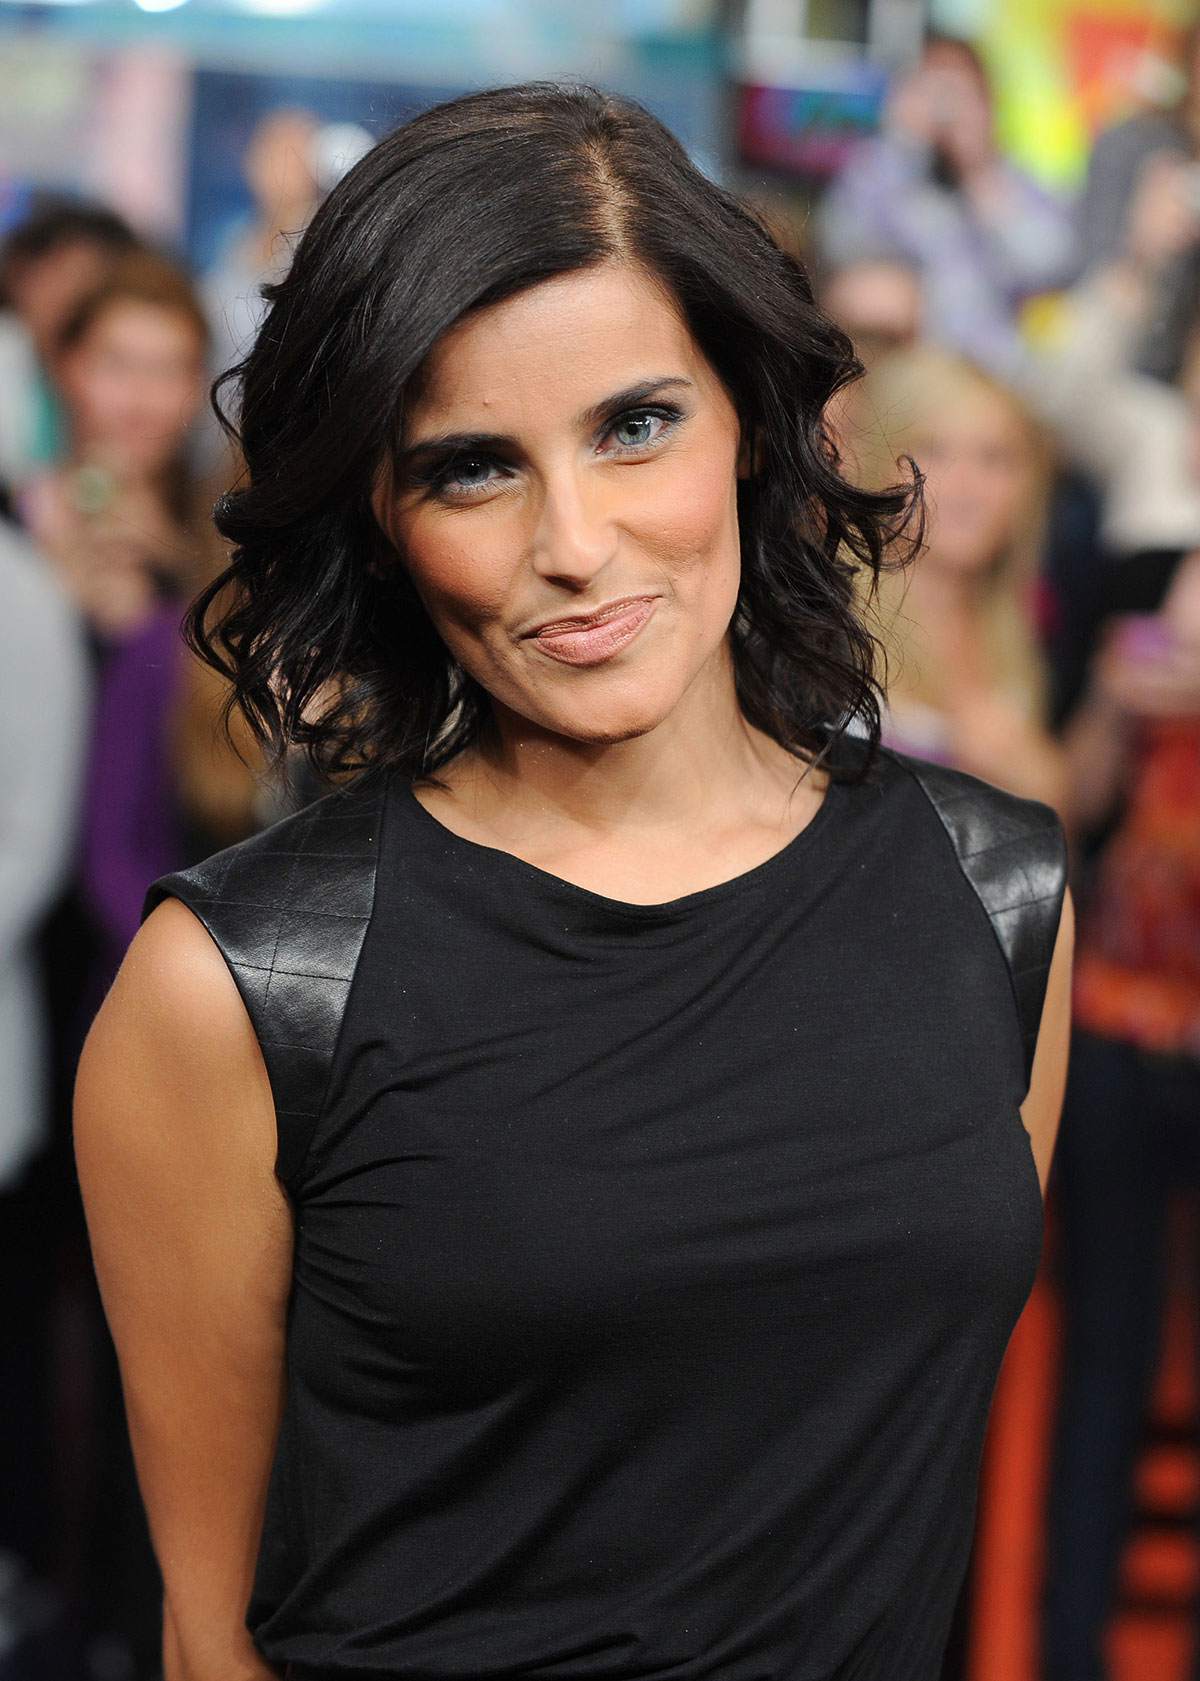 Nelly Furtado appearing on the Canadian TV show Much On Demand